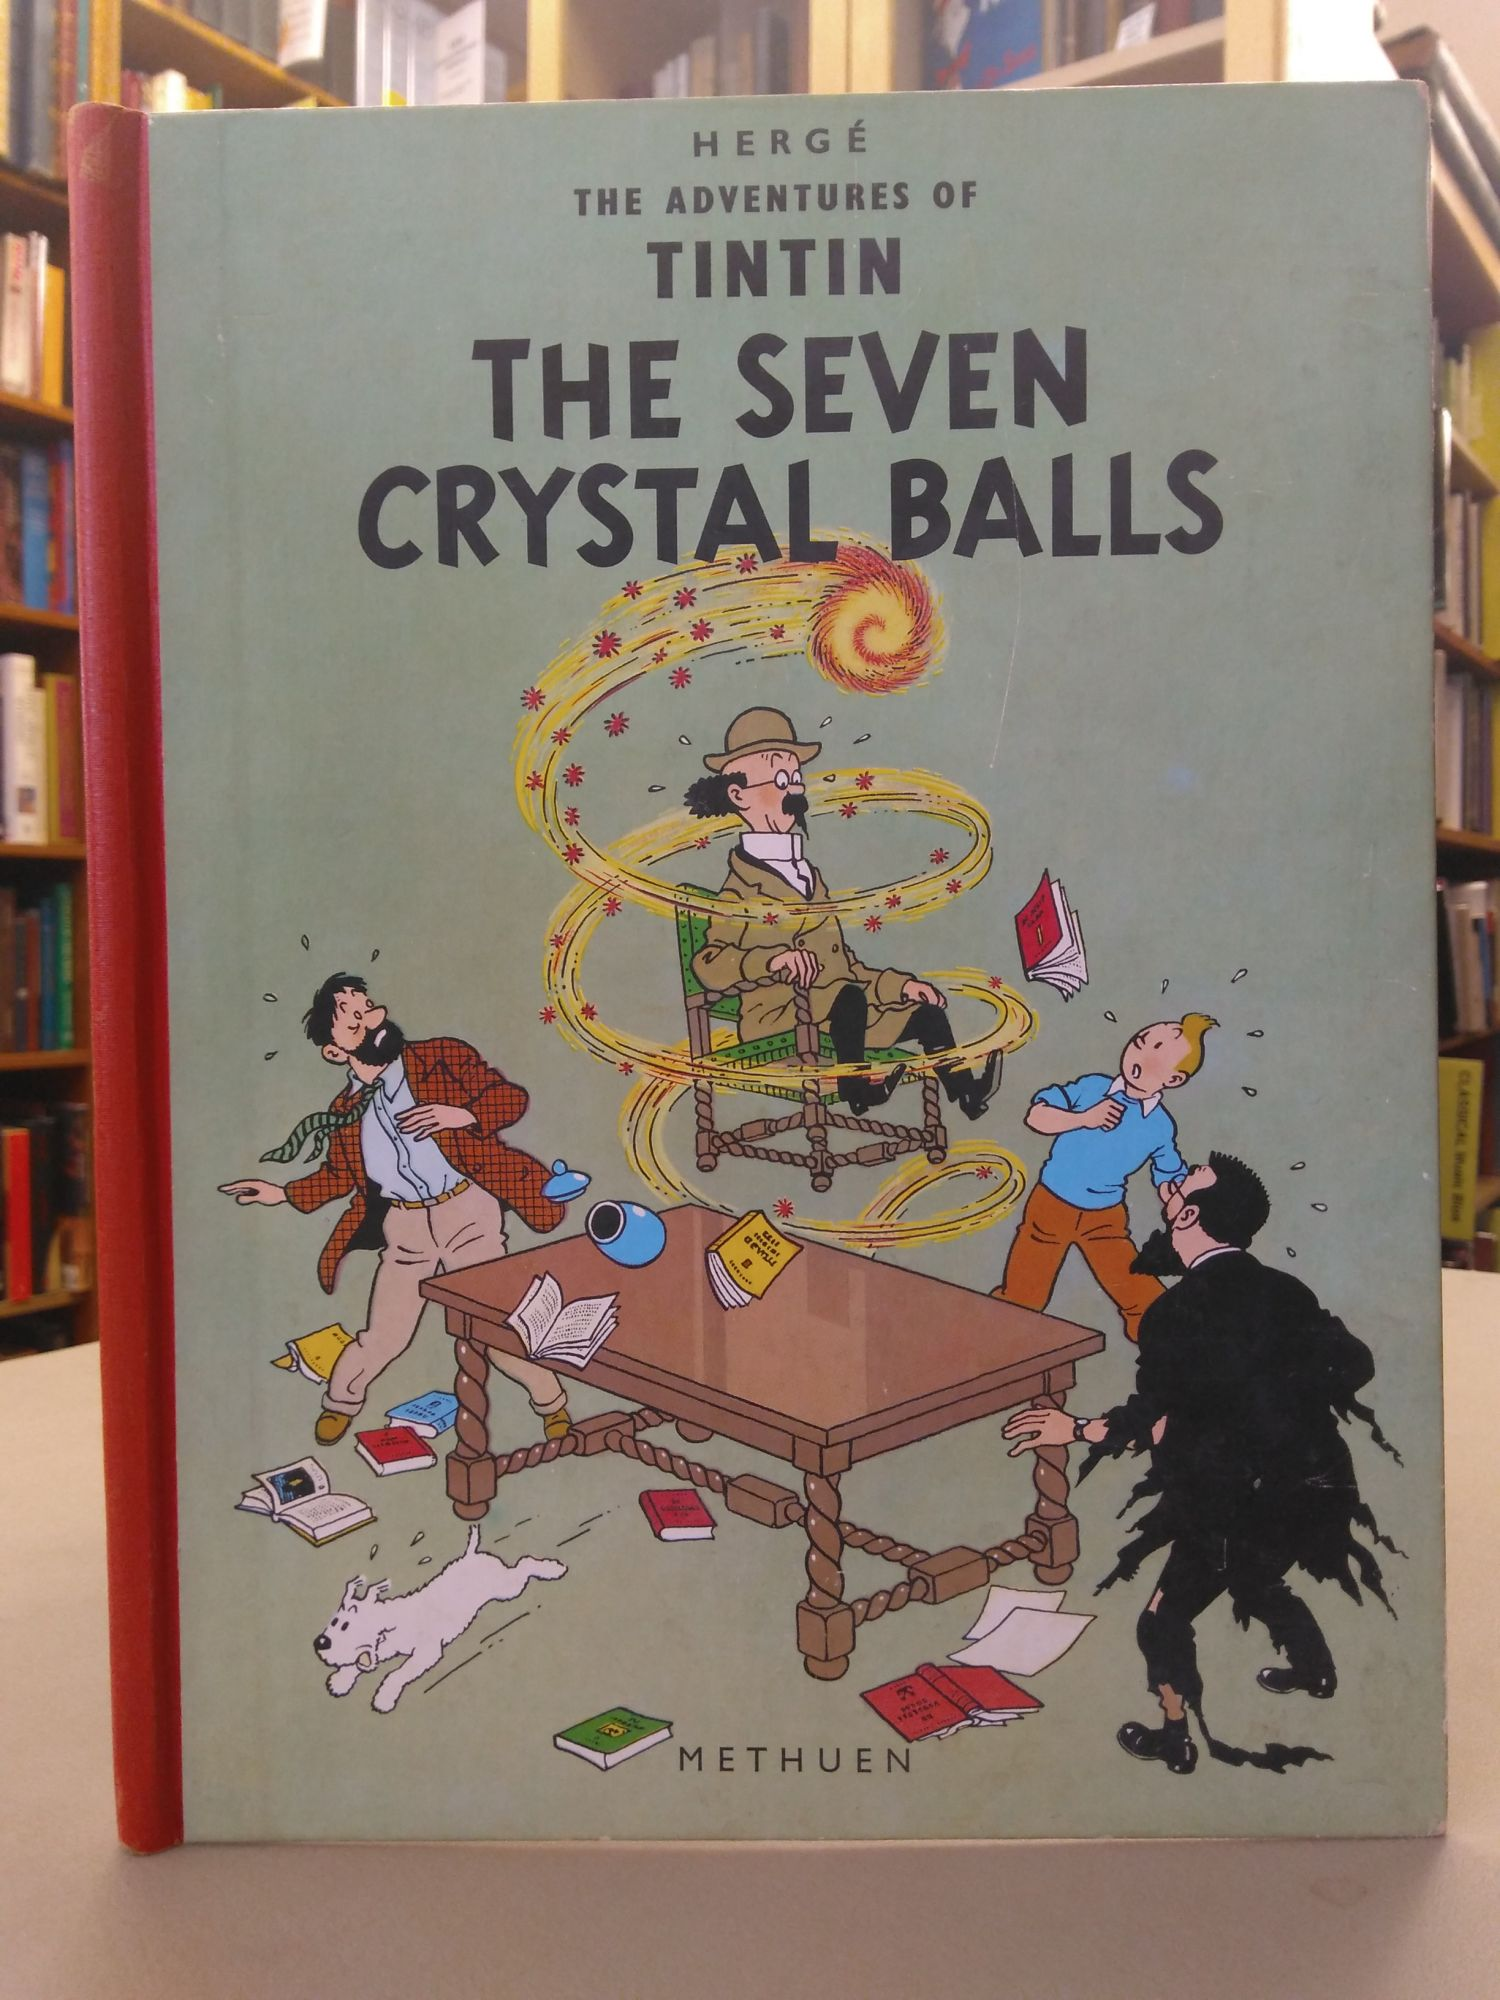 THE SEVEN CRYSTAL BALLS [ADVENTURES OF TINTIN #13]. Hergé, Georges Prosper Remi.